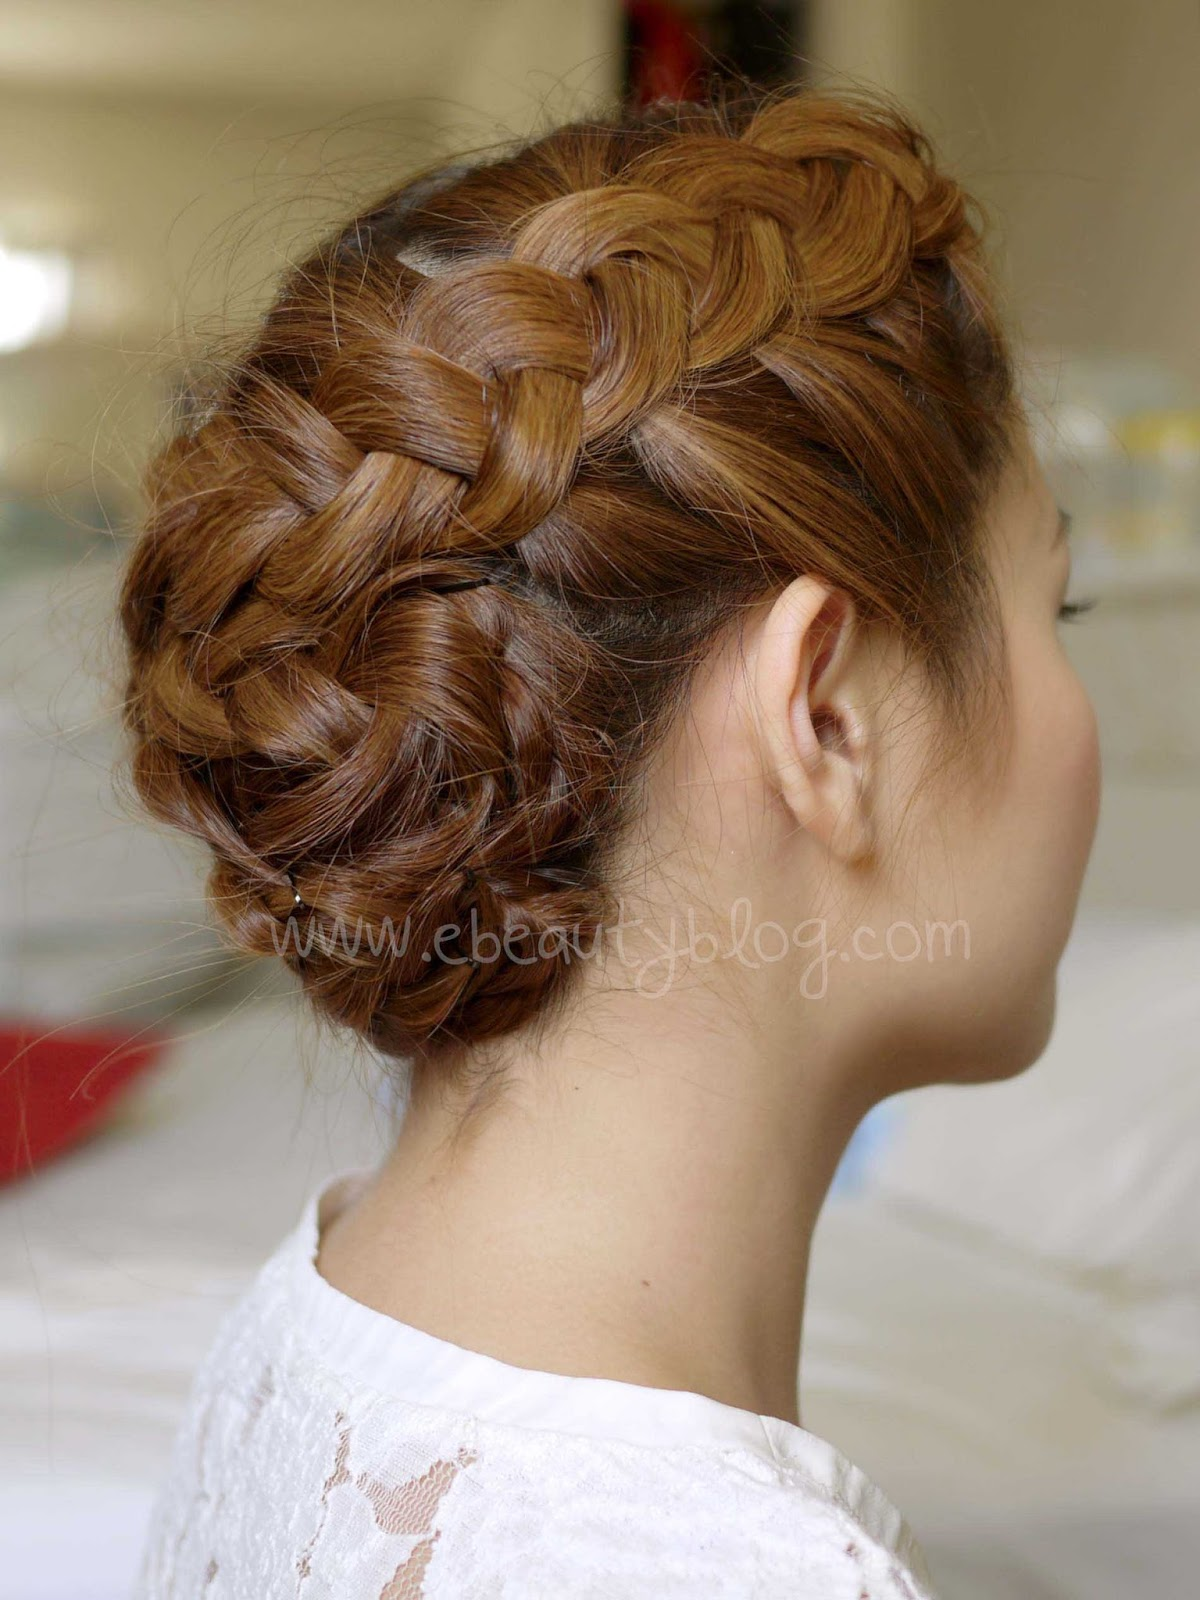 EbeautyBlog.com: Hair Tutorial: Summer Braided Updo